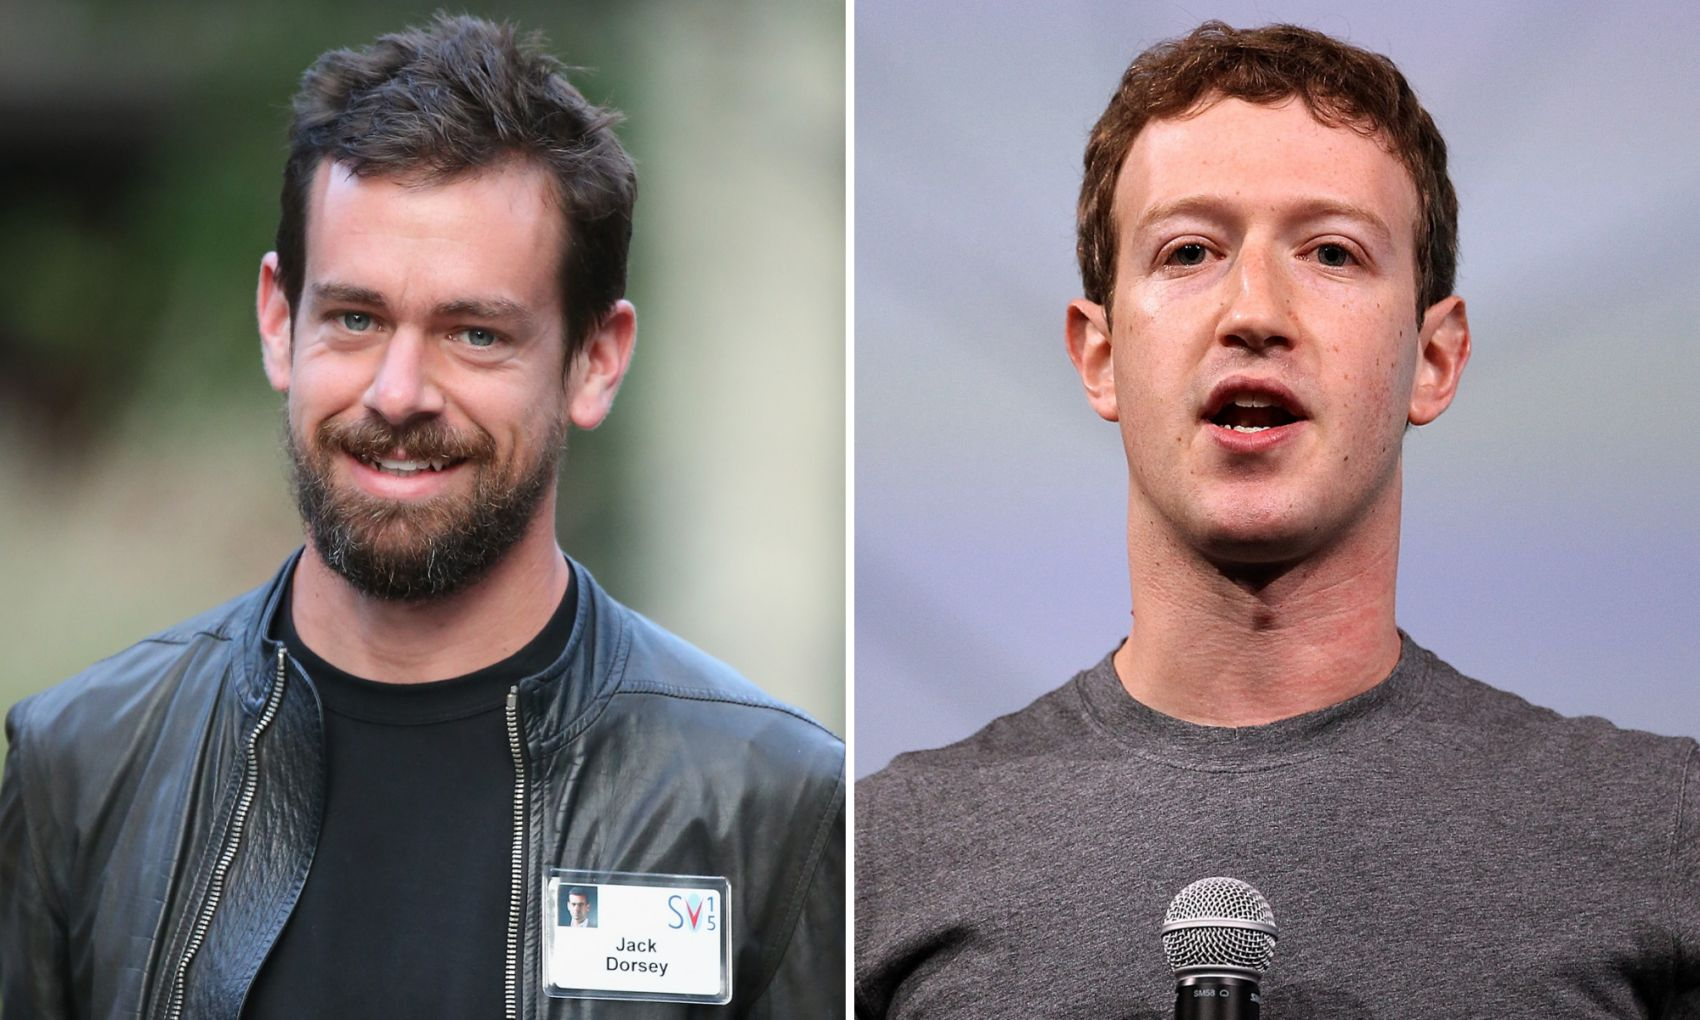 CEO ของ Facebook และ Twitter